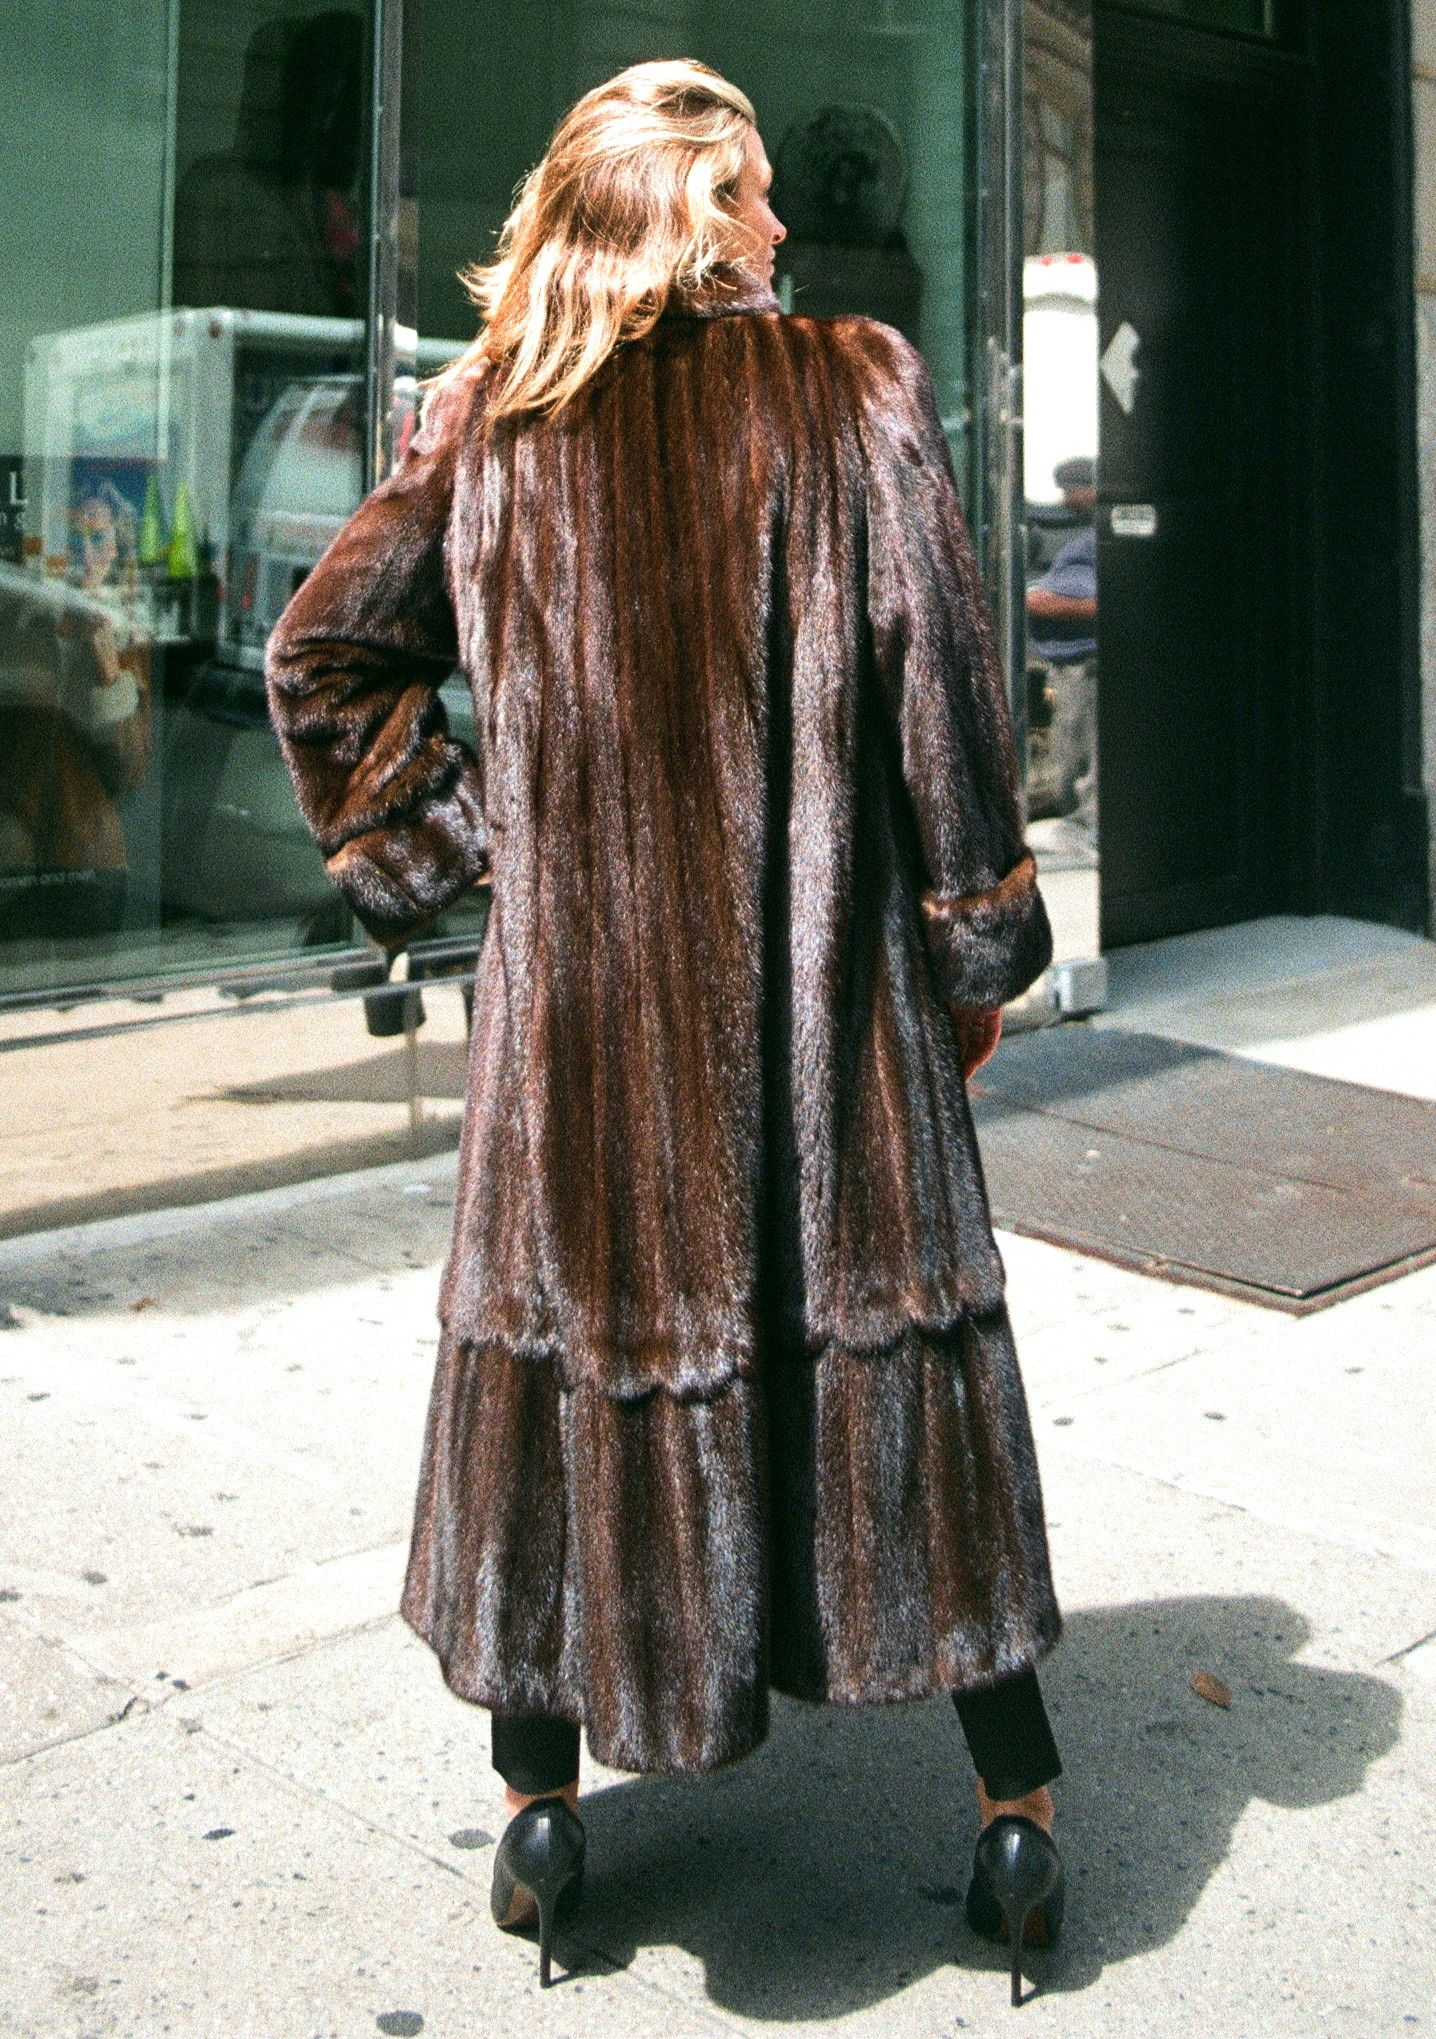 3 4 Fur Coats New York Nyc Furriers Fur Rentals